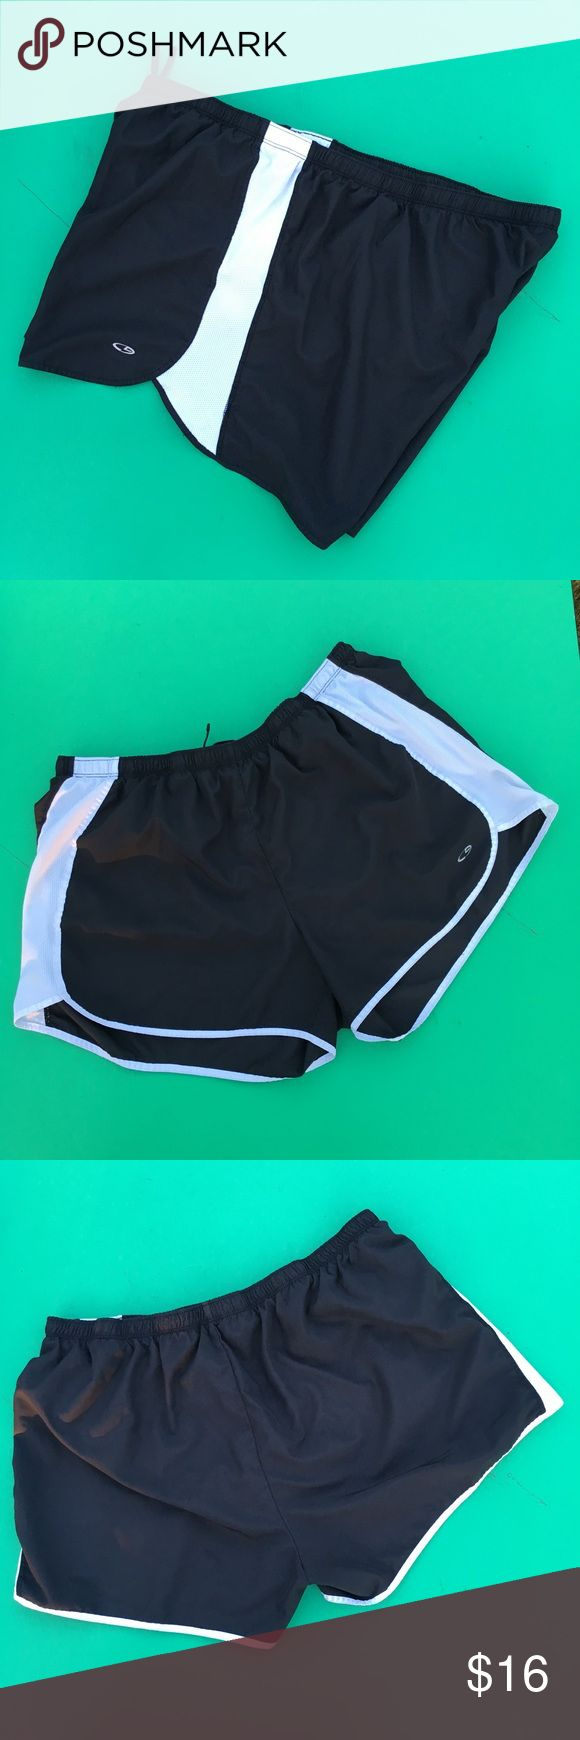 """Champion Sport Shorts Ladies XXL (waist 36.5"""") Champion Sport shorts. Wear these no matter what your doing. Top of waist to bottom of hem 13"""". Liner w/ key pocket. White sides are mesh for comfort and breath ability. Waist is elastic w/ draw string.     Just like New No stains, snags or damage Non smoking environment   Not the right size ,color or style you're looking for check out Molly's closet  Thanks for Looking Molly  M448/W.25 Champion Shorts"""